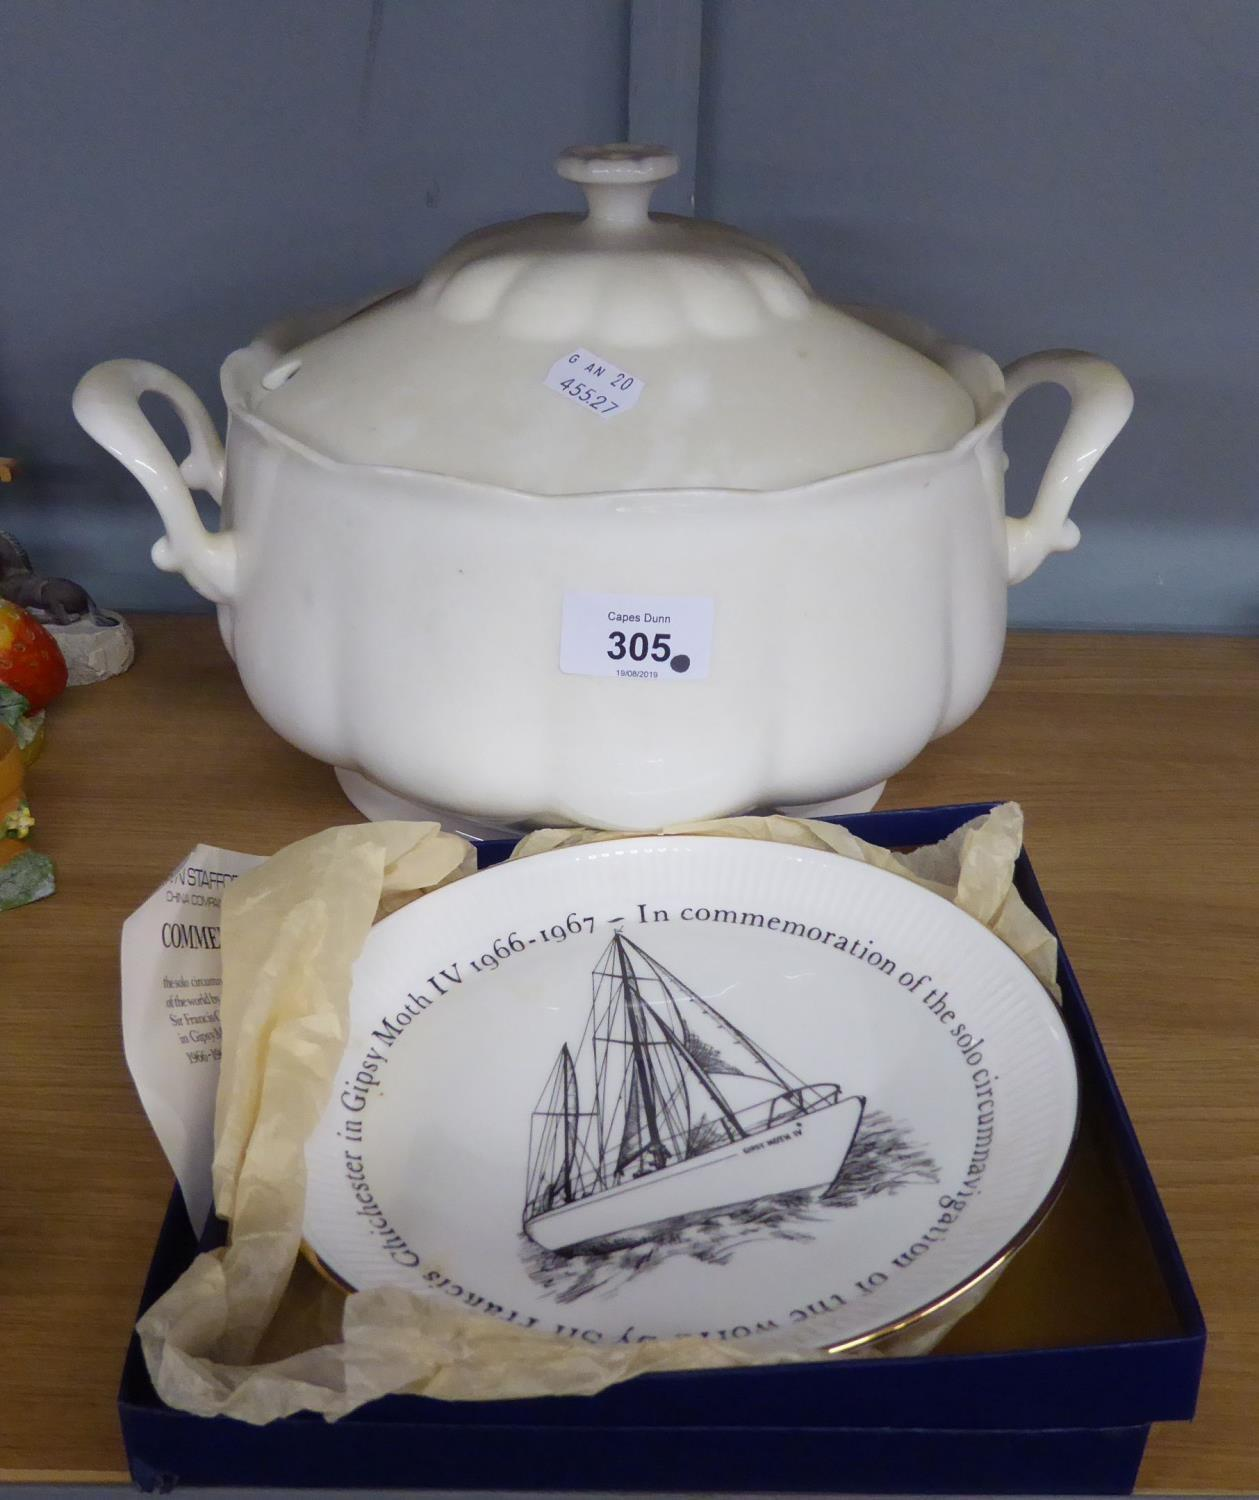 Lot 315 - A LARGE WHITE CHINESE TWO HANDLED SOUP TUREEN AND COVER AND A COMMEMORATIVE PLATE, BOXED (2)